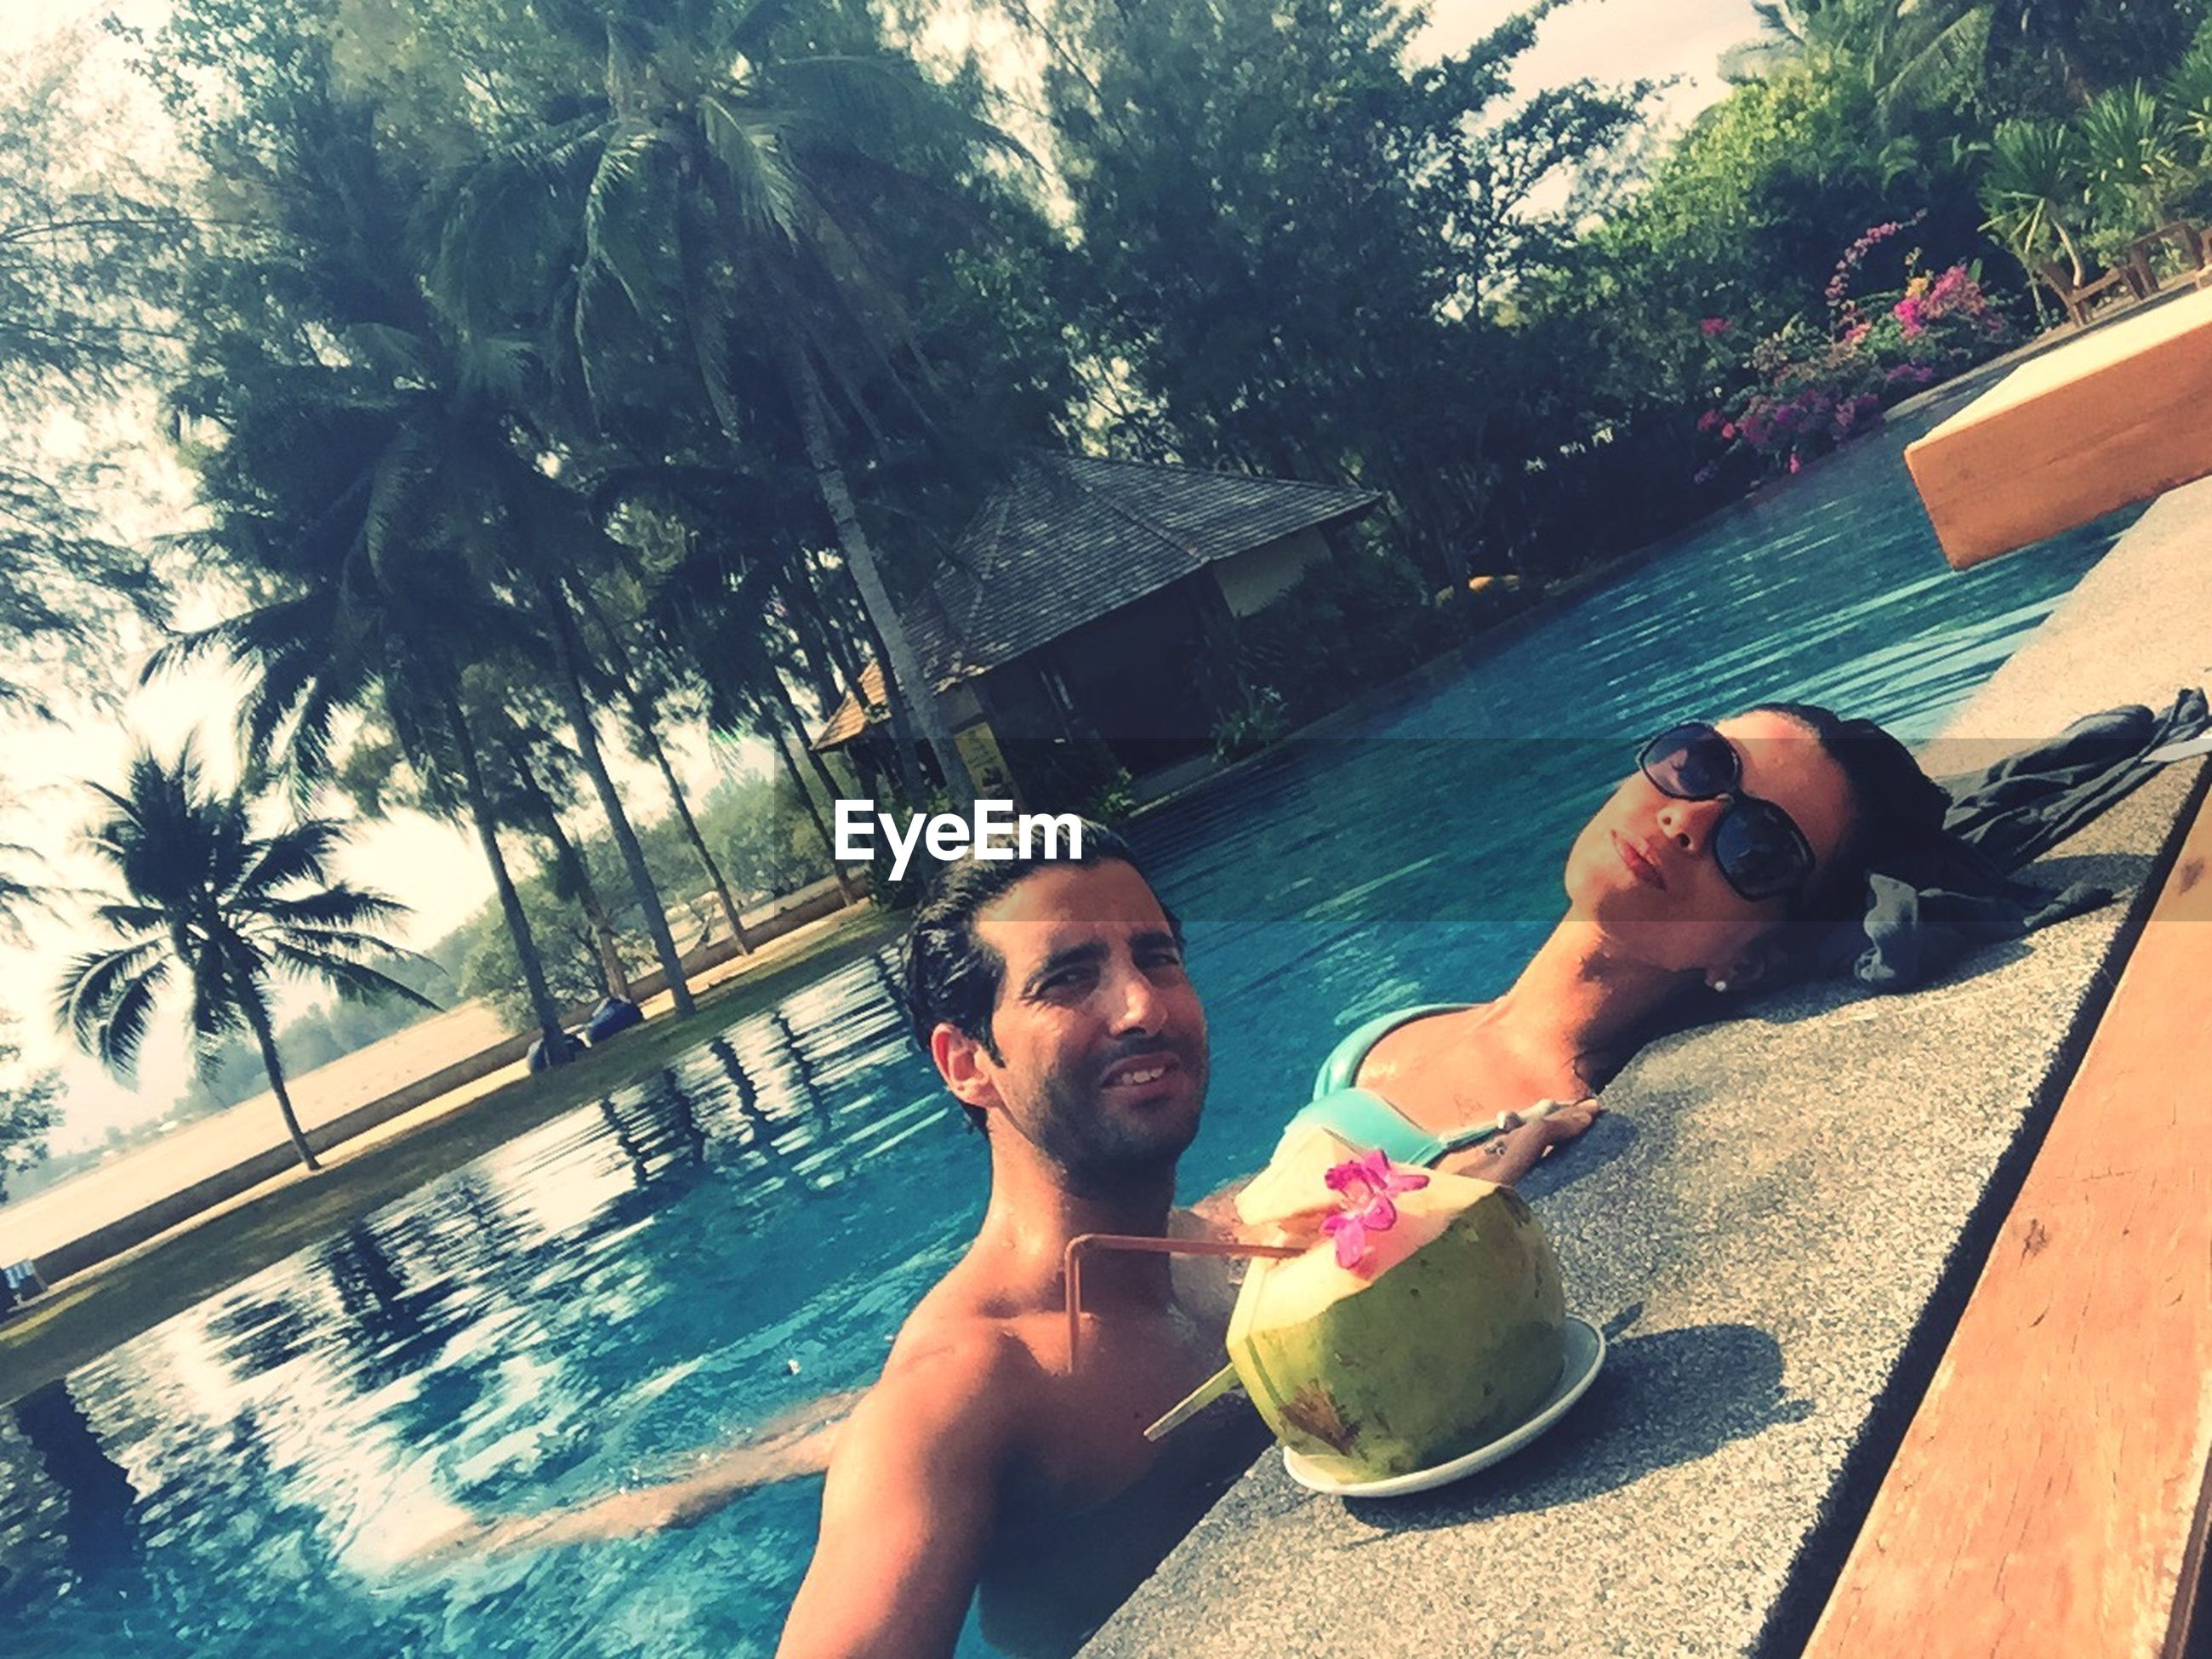 lifestyles, leisure activity, young adult, person, young women, tree, water, swimming pool, casual clothing, sunlight, smiling, full length, sitting, fun, happiness, looking at camera, enjoyment